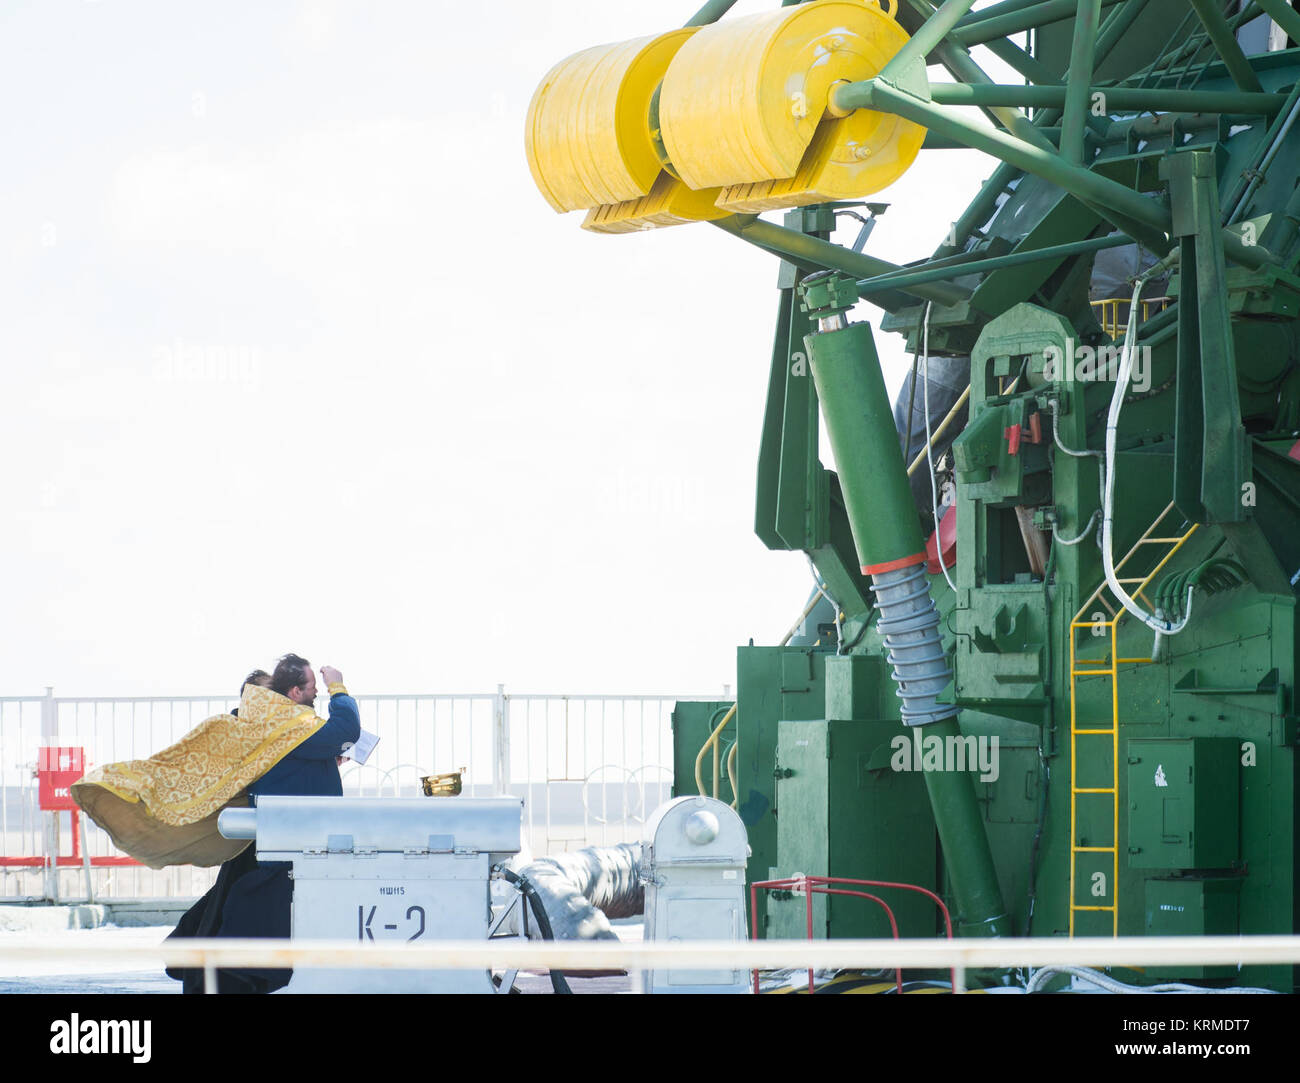 An Orthodox priest blesses the Soyuz rocket at the Baikonur Cosmodrome launch pad on Thursday, March 17, 2016 in Stock Photo